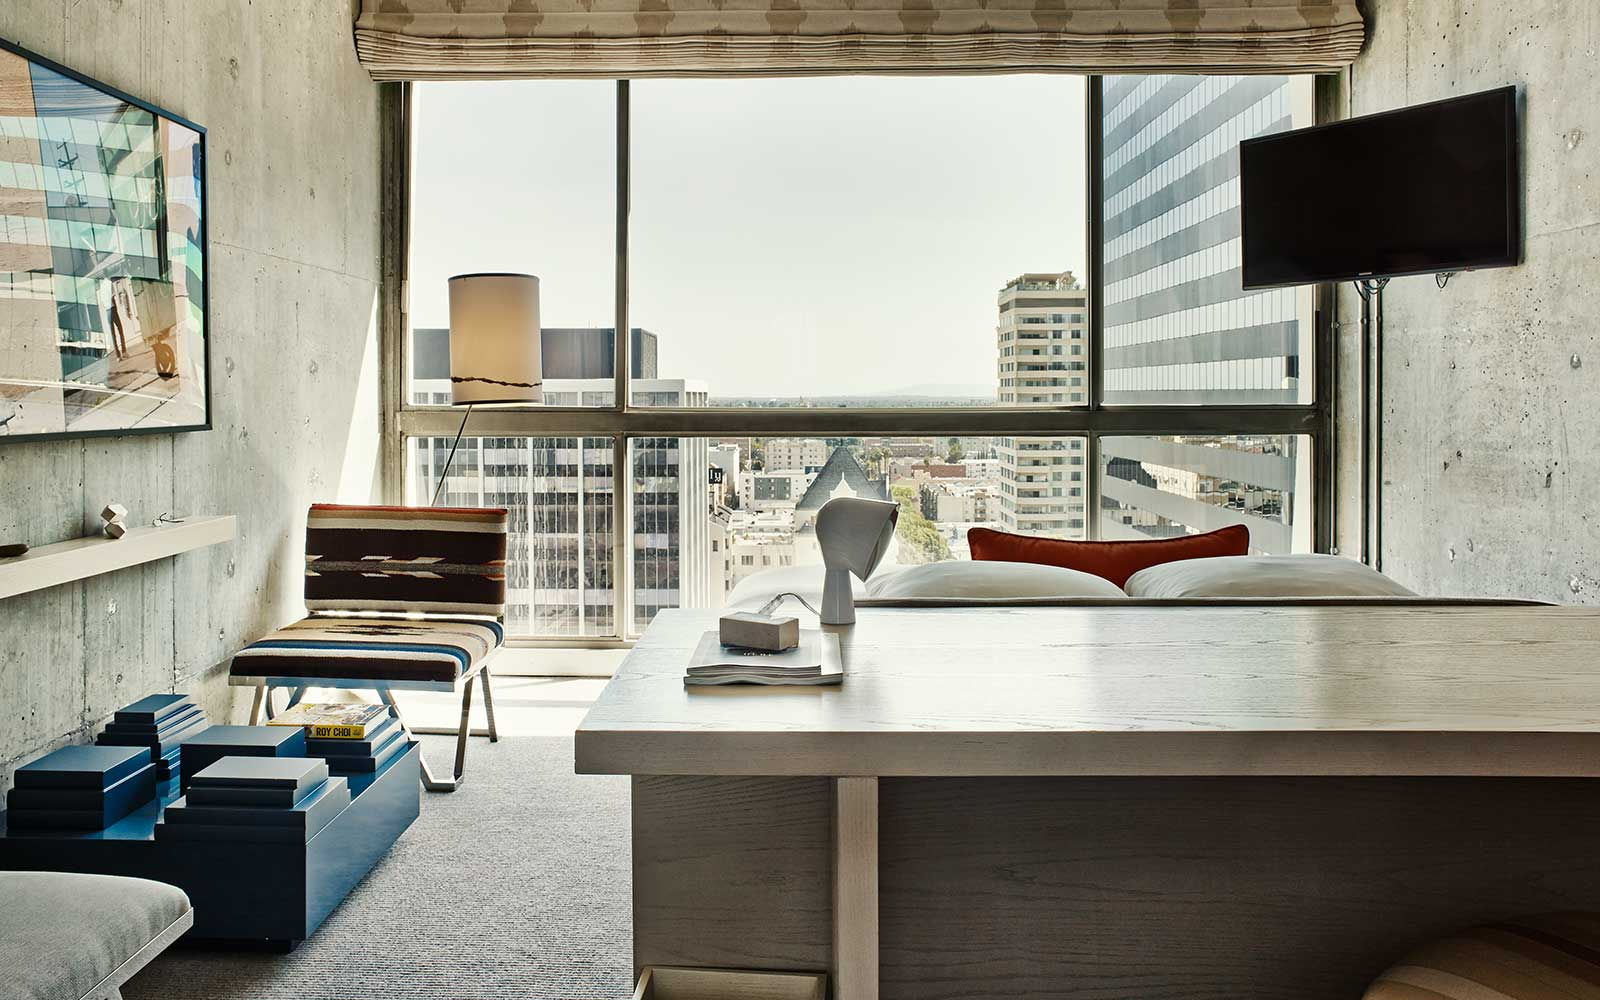 The Line Hotel - Room / Knibb Design (13)